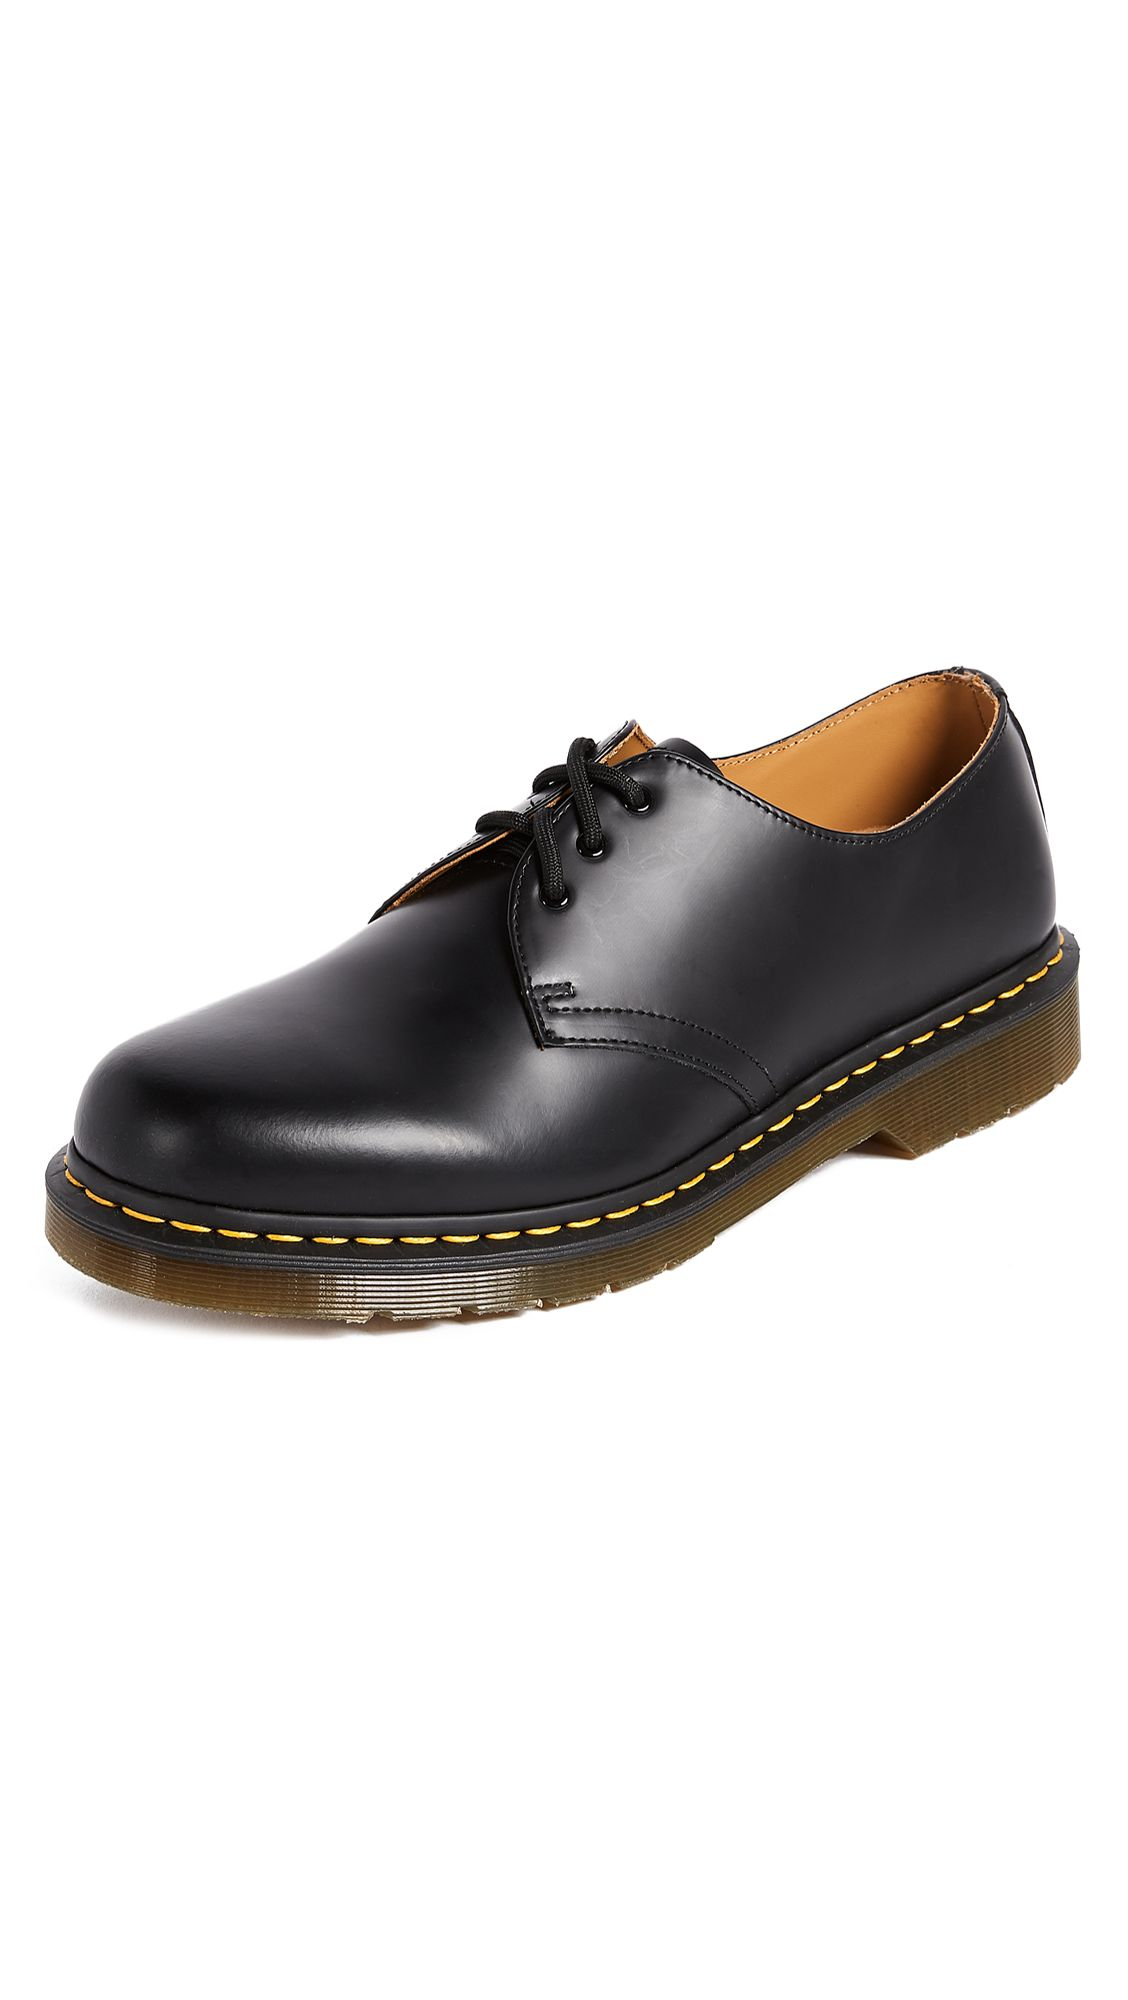 Dr martens 1461 3 eye gibson lace up oxfords in black